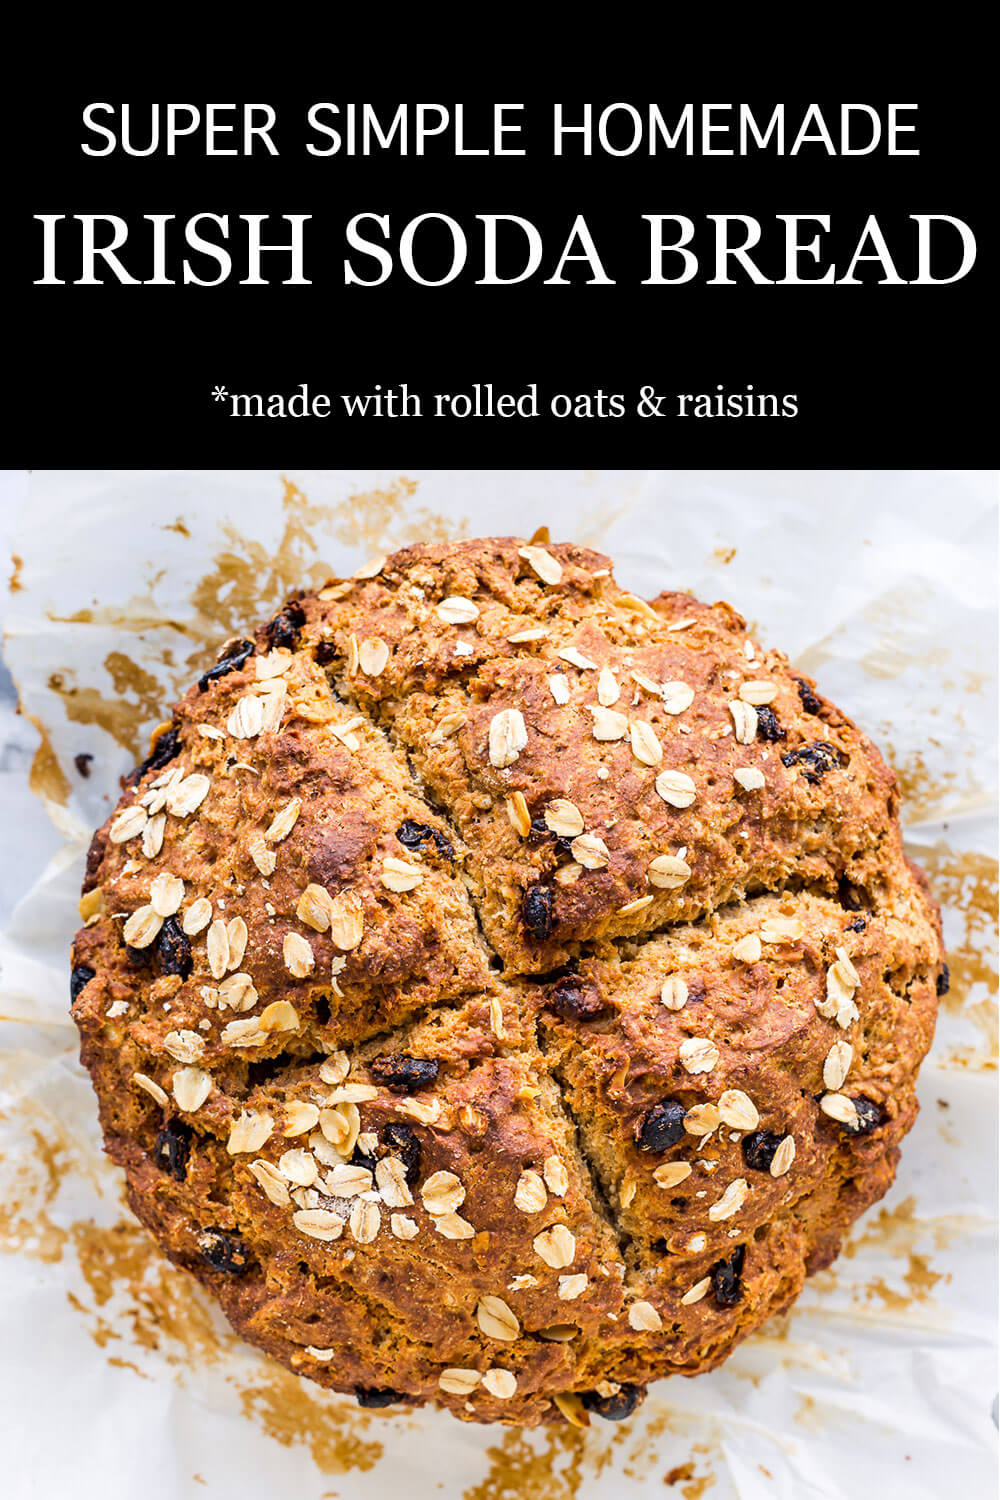 Golden brown loaf of homemade Irish soda bread with raisins and rolled oats scored into 4 sections